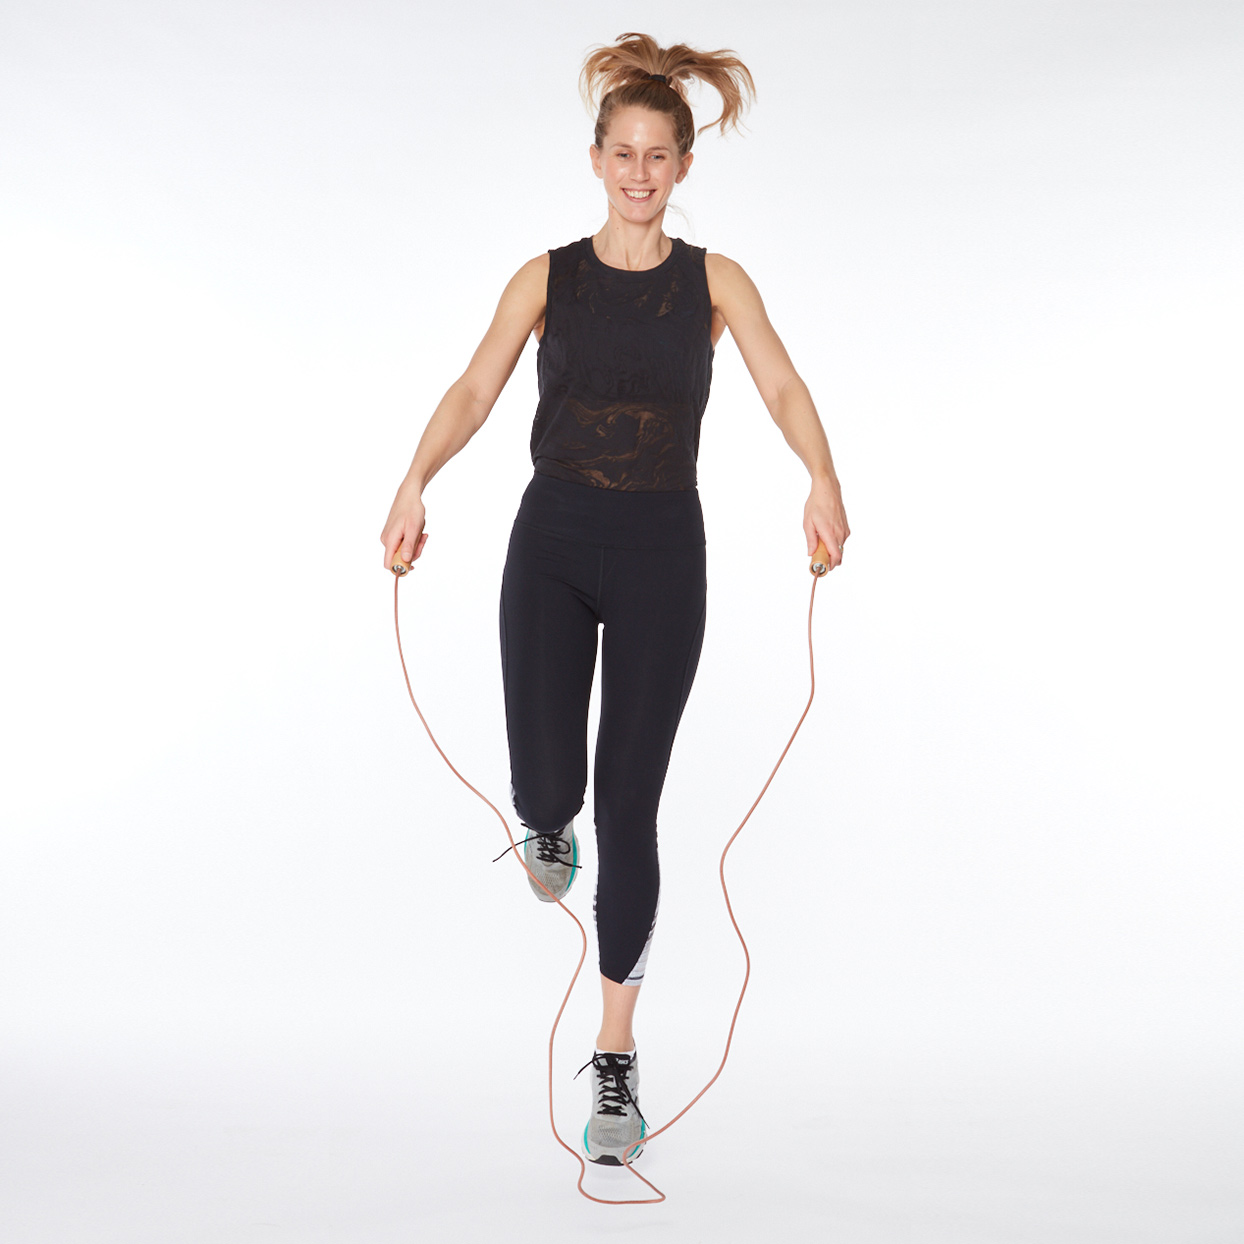 best workouts for women HIIT exercise